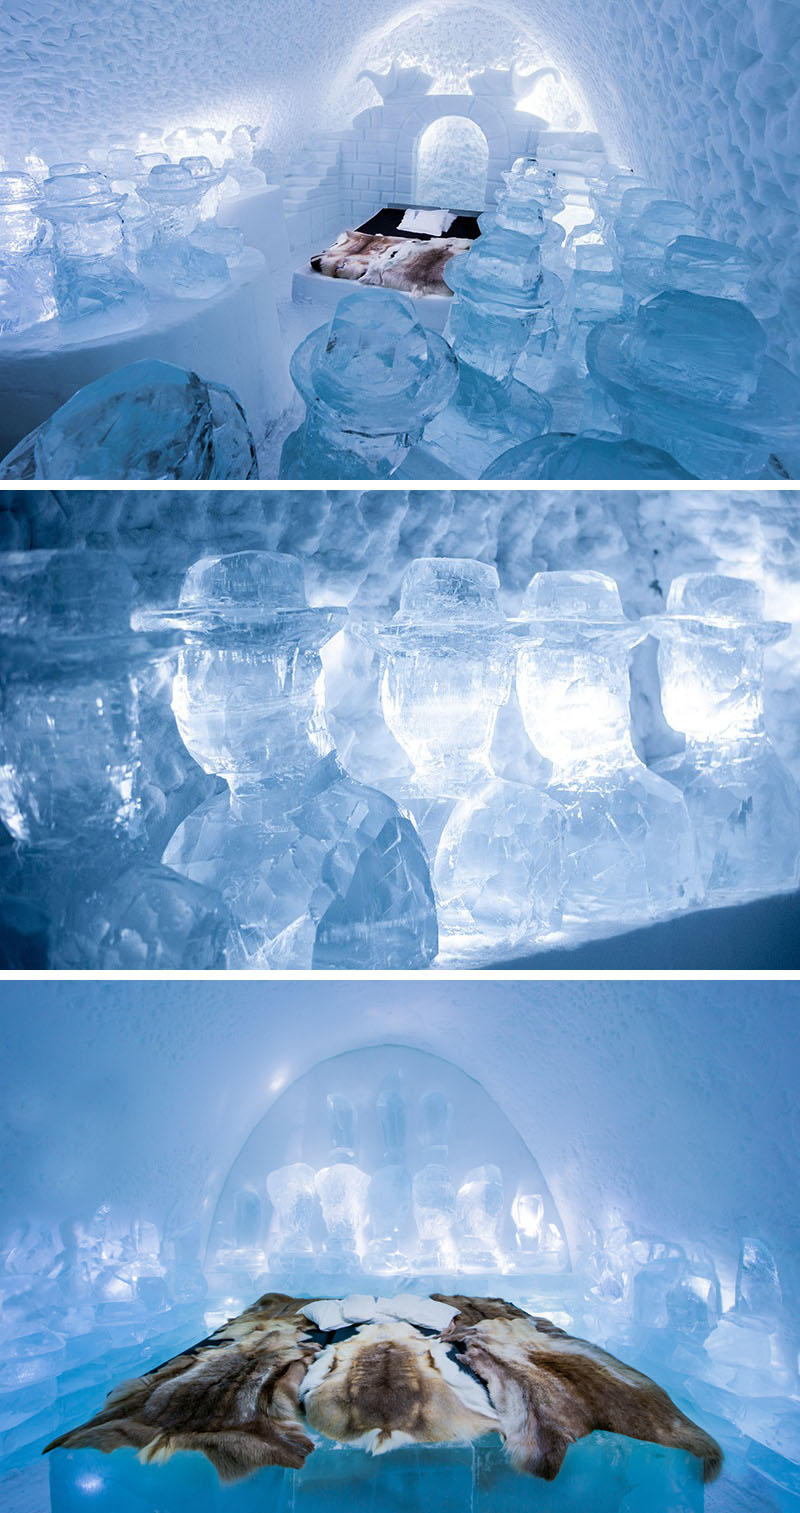 ICEHOTEL 365 is open 11